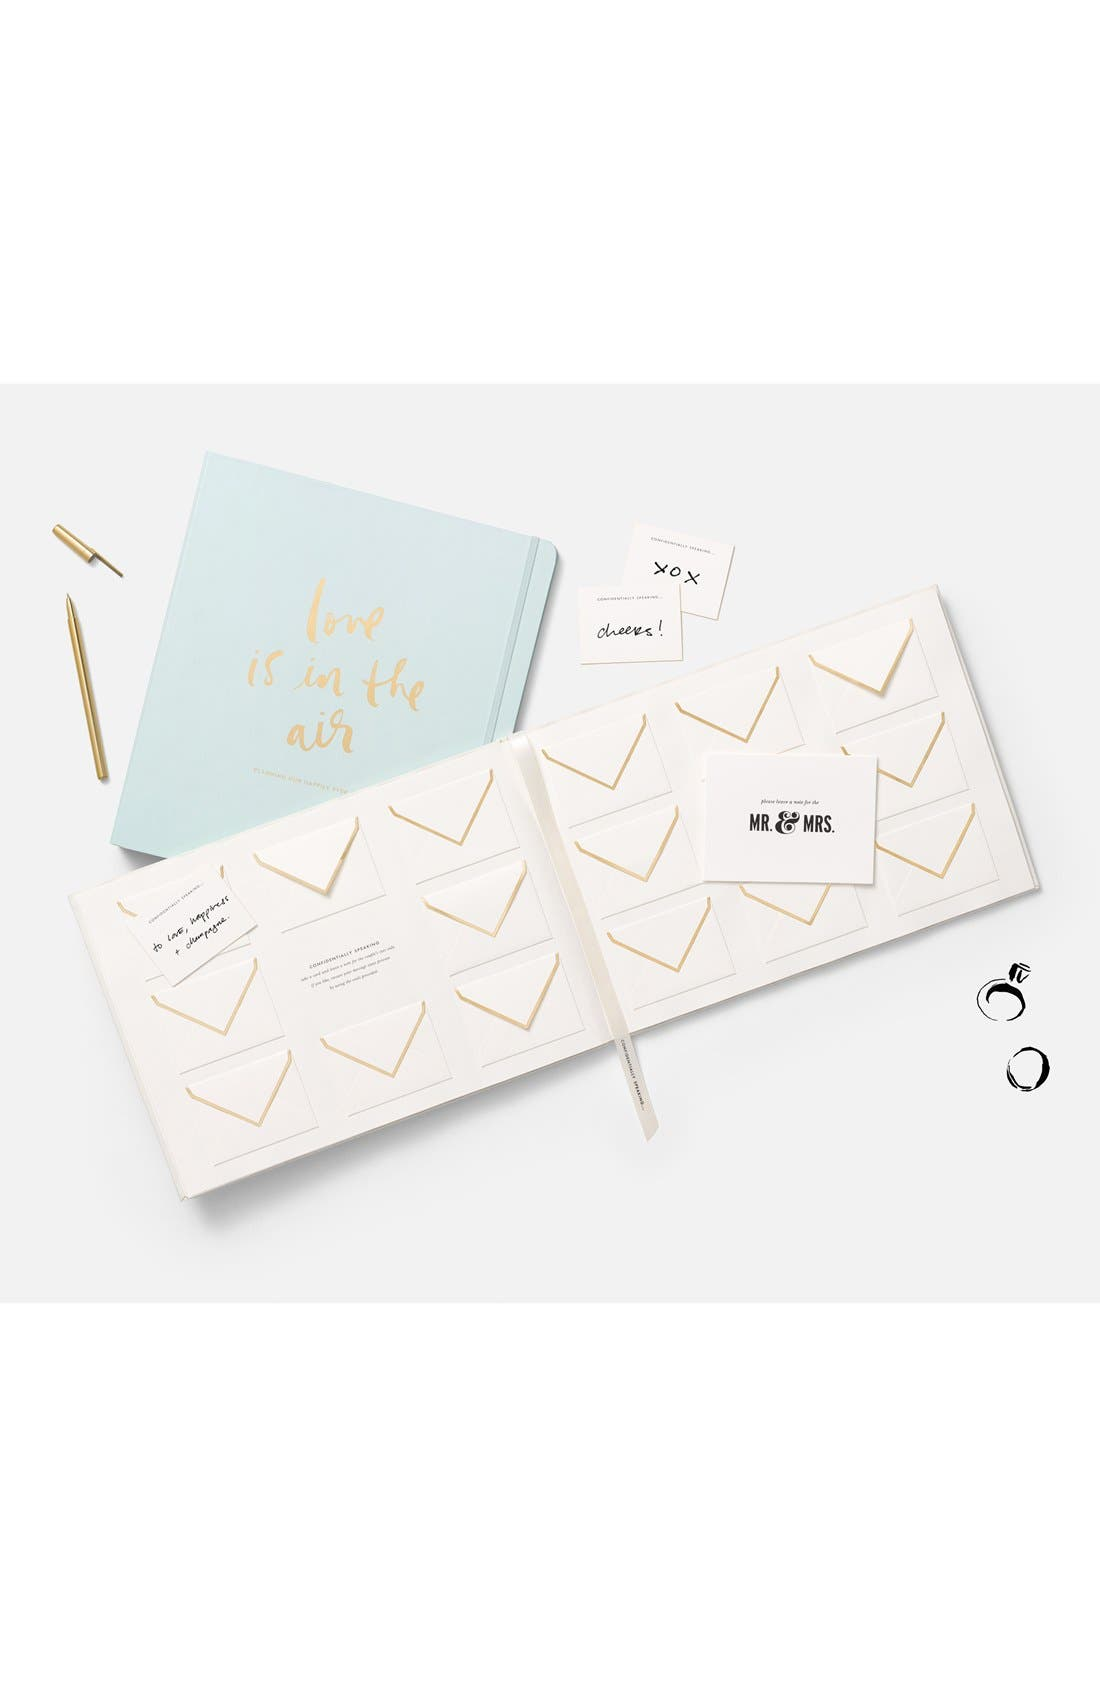 KATE SPADE NEW YORK,                             'notes to the bride & groom' guest book,                             Alternate thumbnail 2, color,                             100